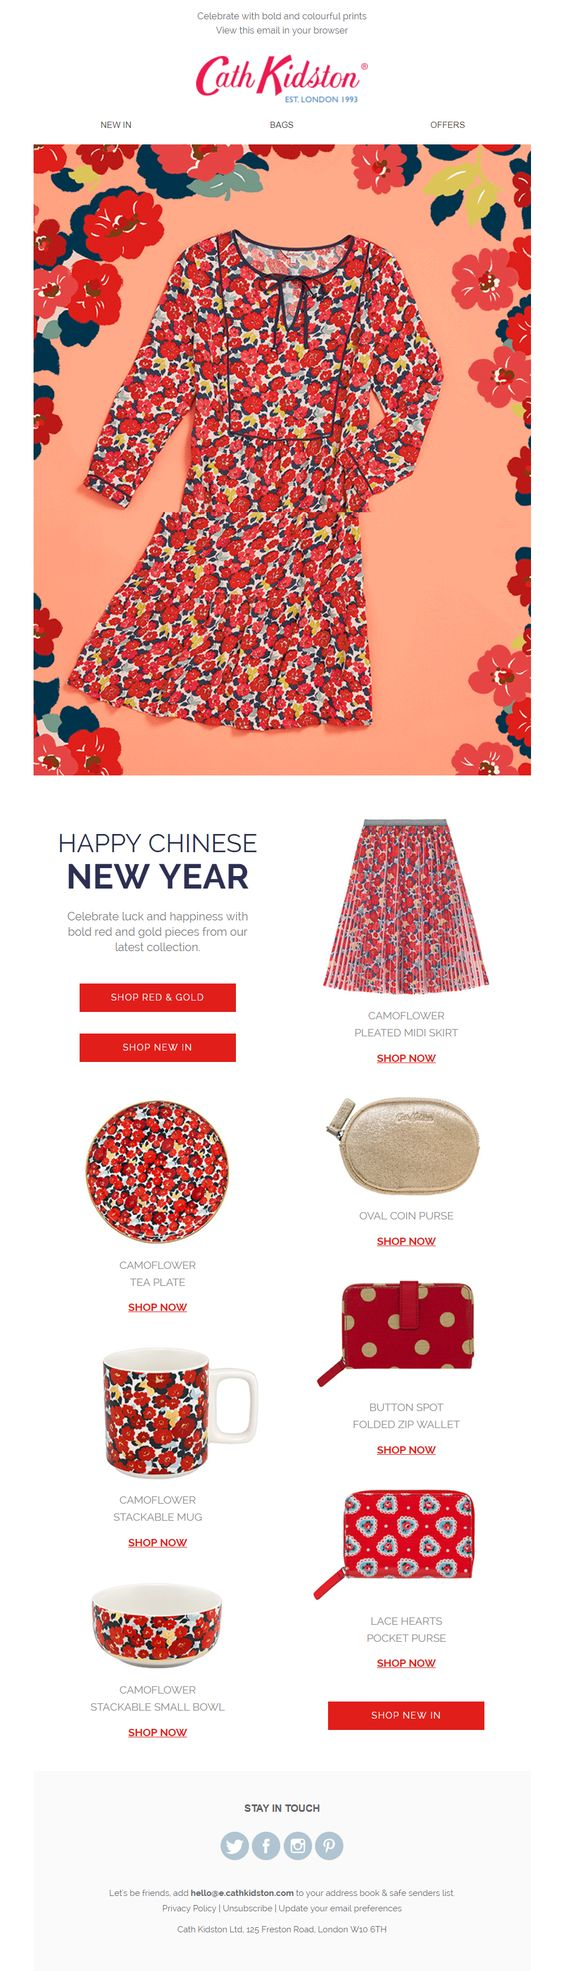 Red and gold color scheme lunar new year email